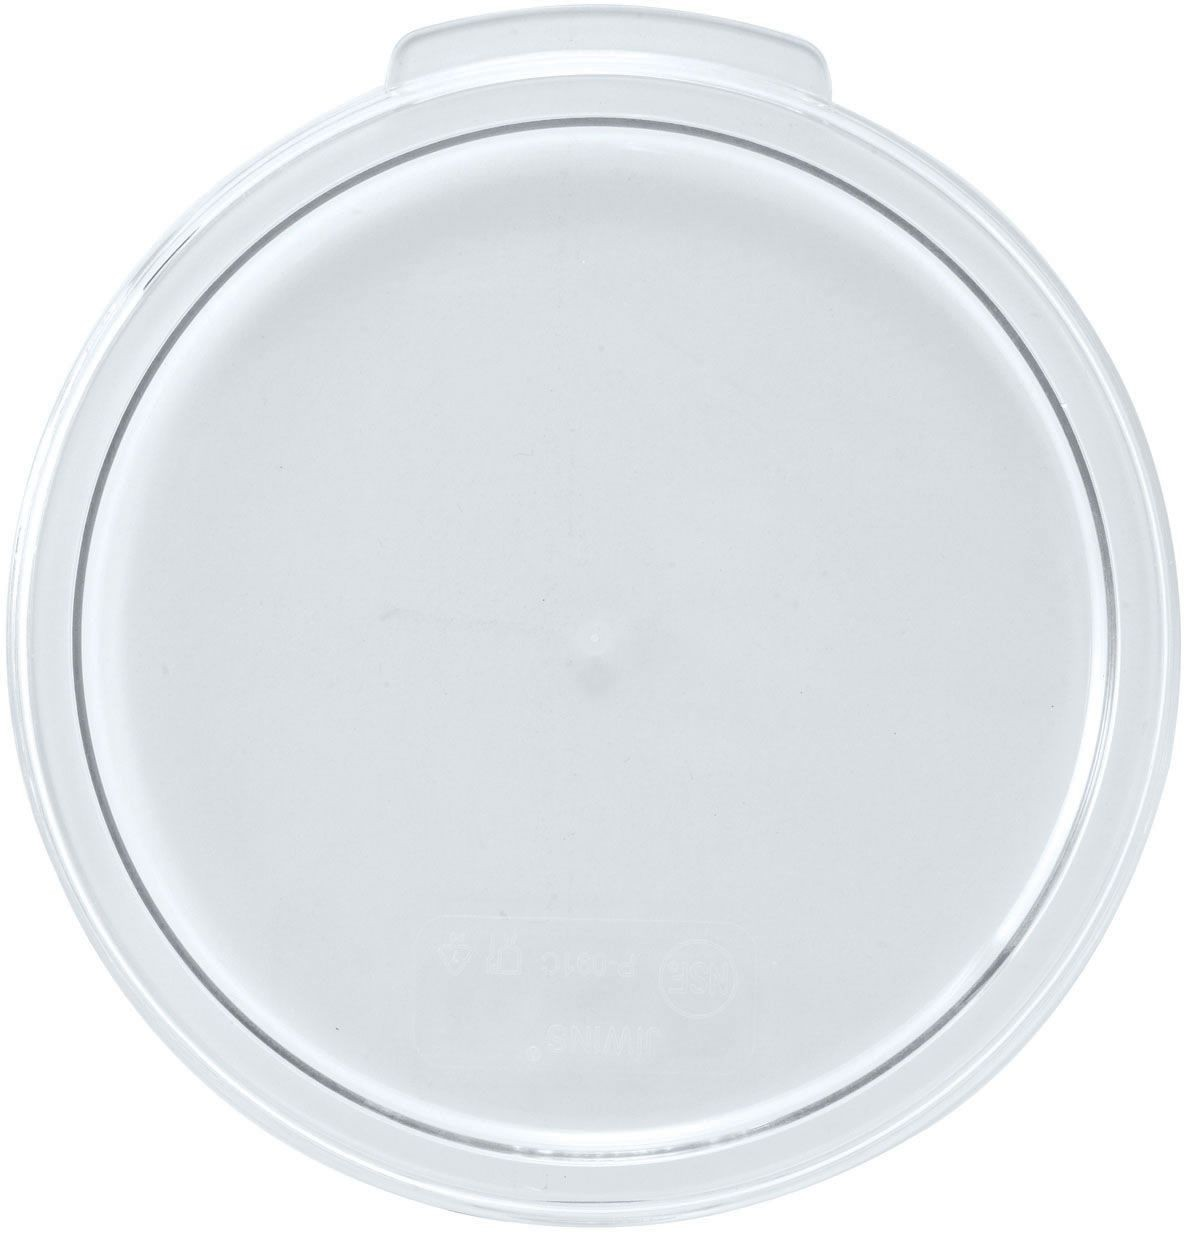 Winco PTRC-24C Translucent Round Storage Container Cover